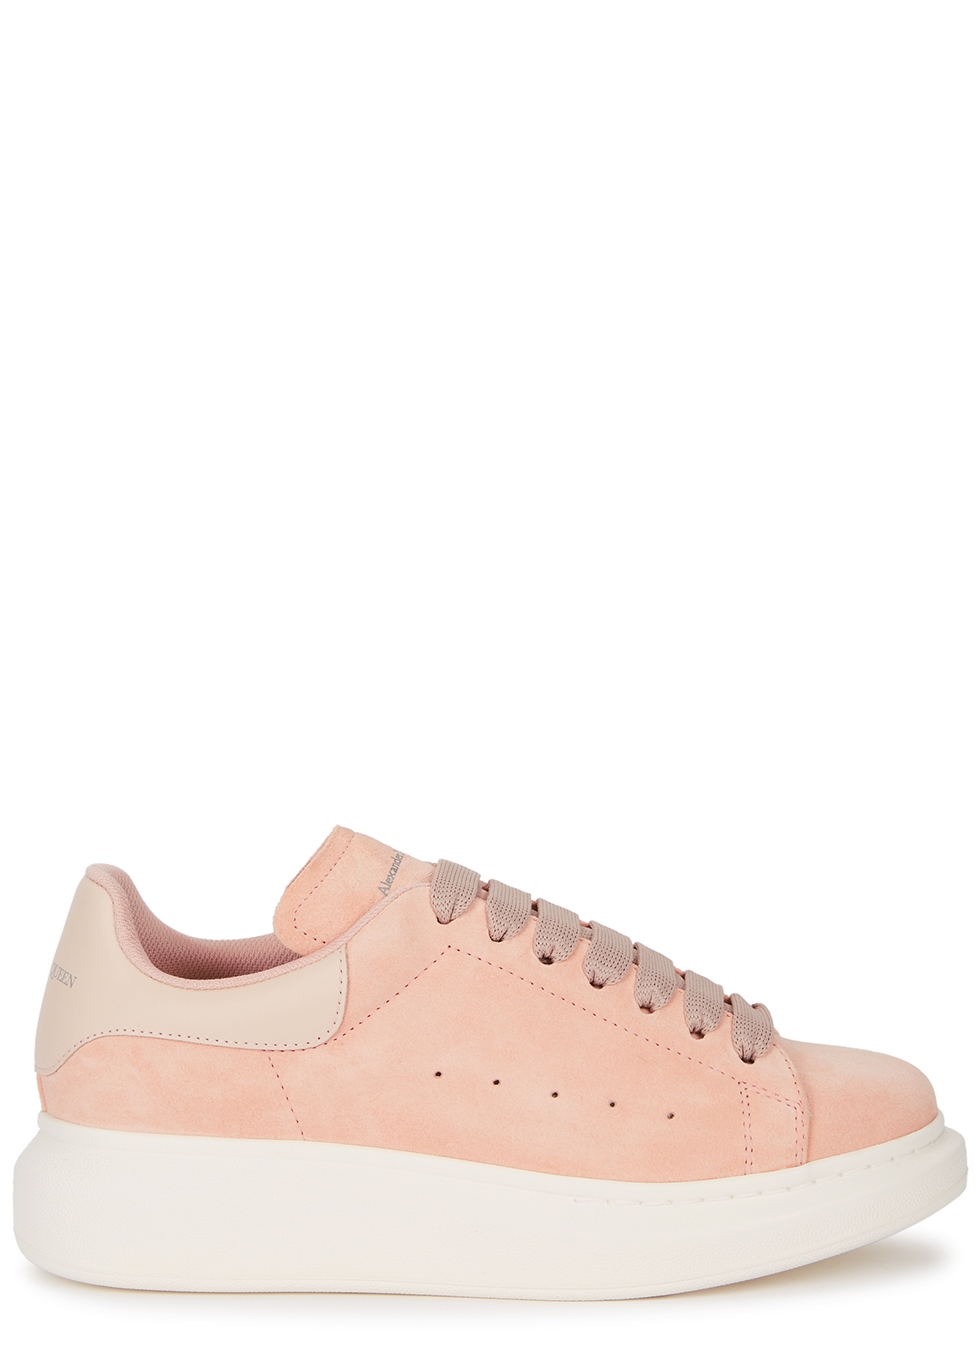 Larry blush suede sneakers